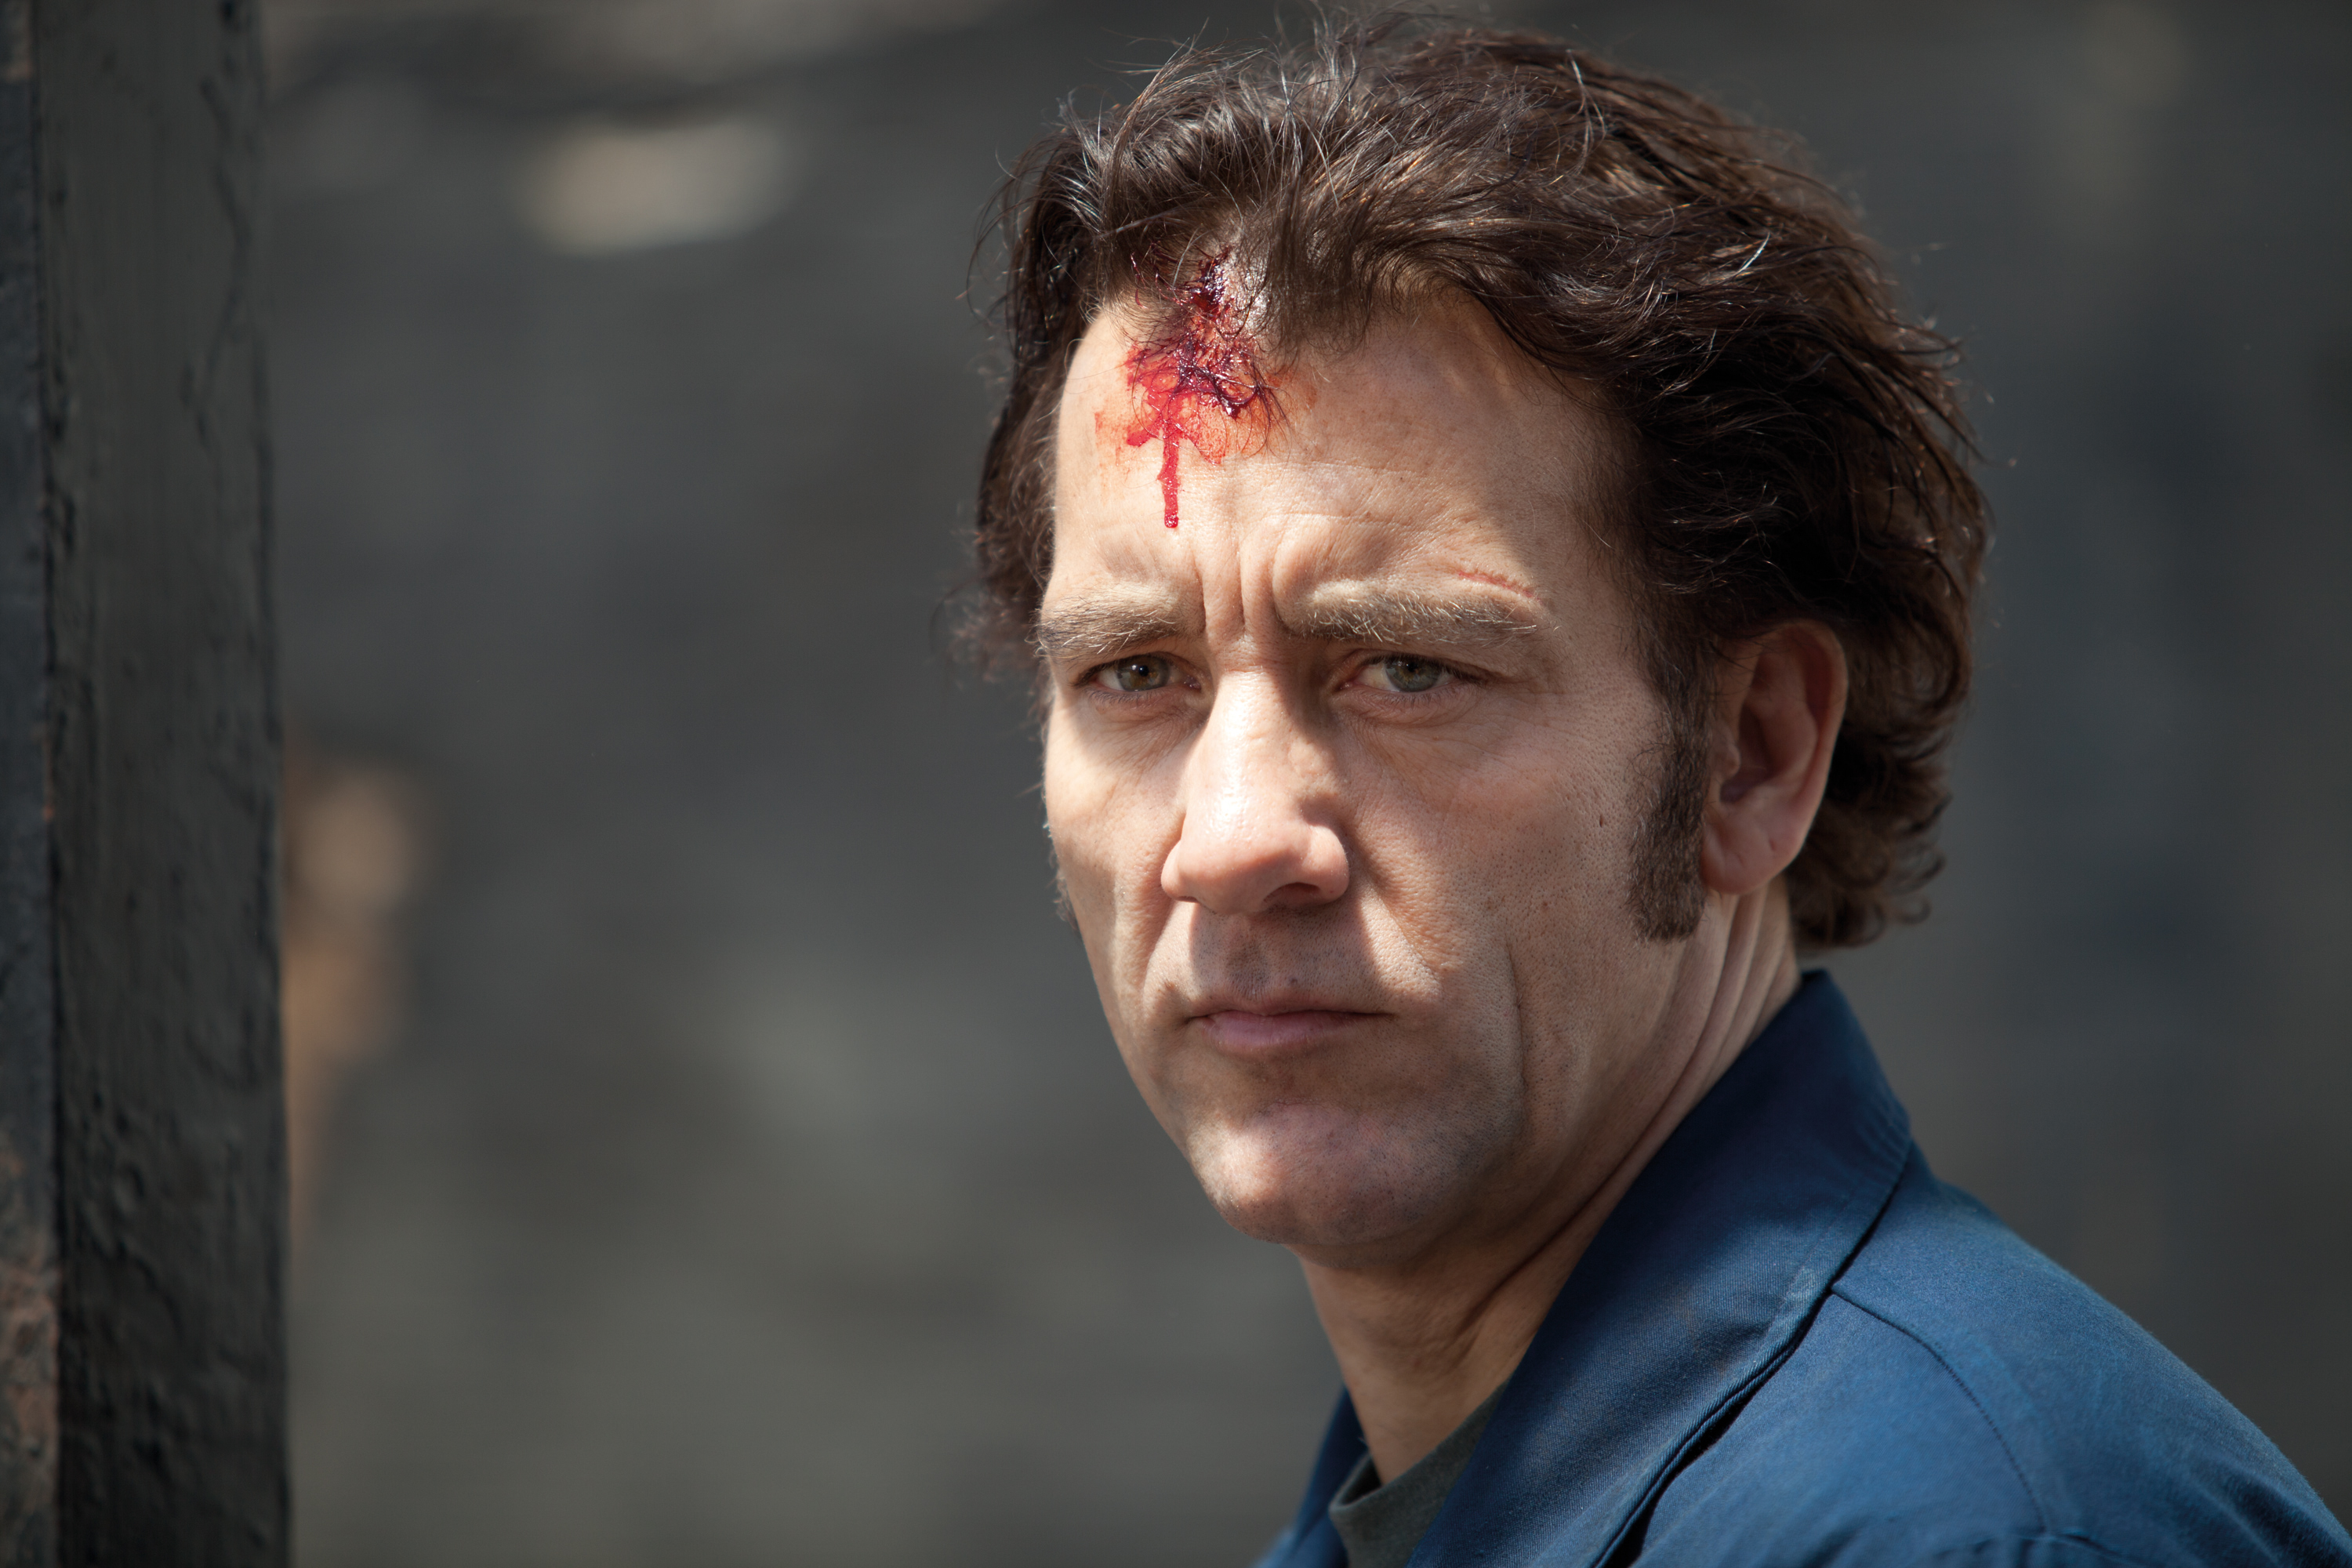 BLOOD TIES Images. BLOOD TIES Stars Clive Owen, Marion Cotillard.